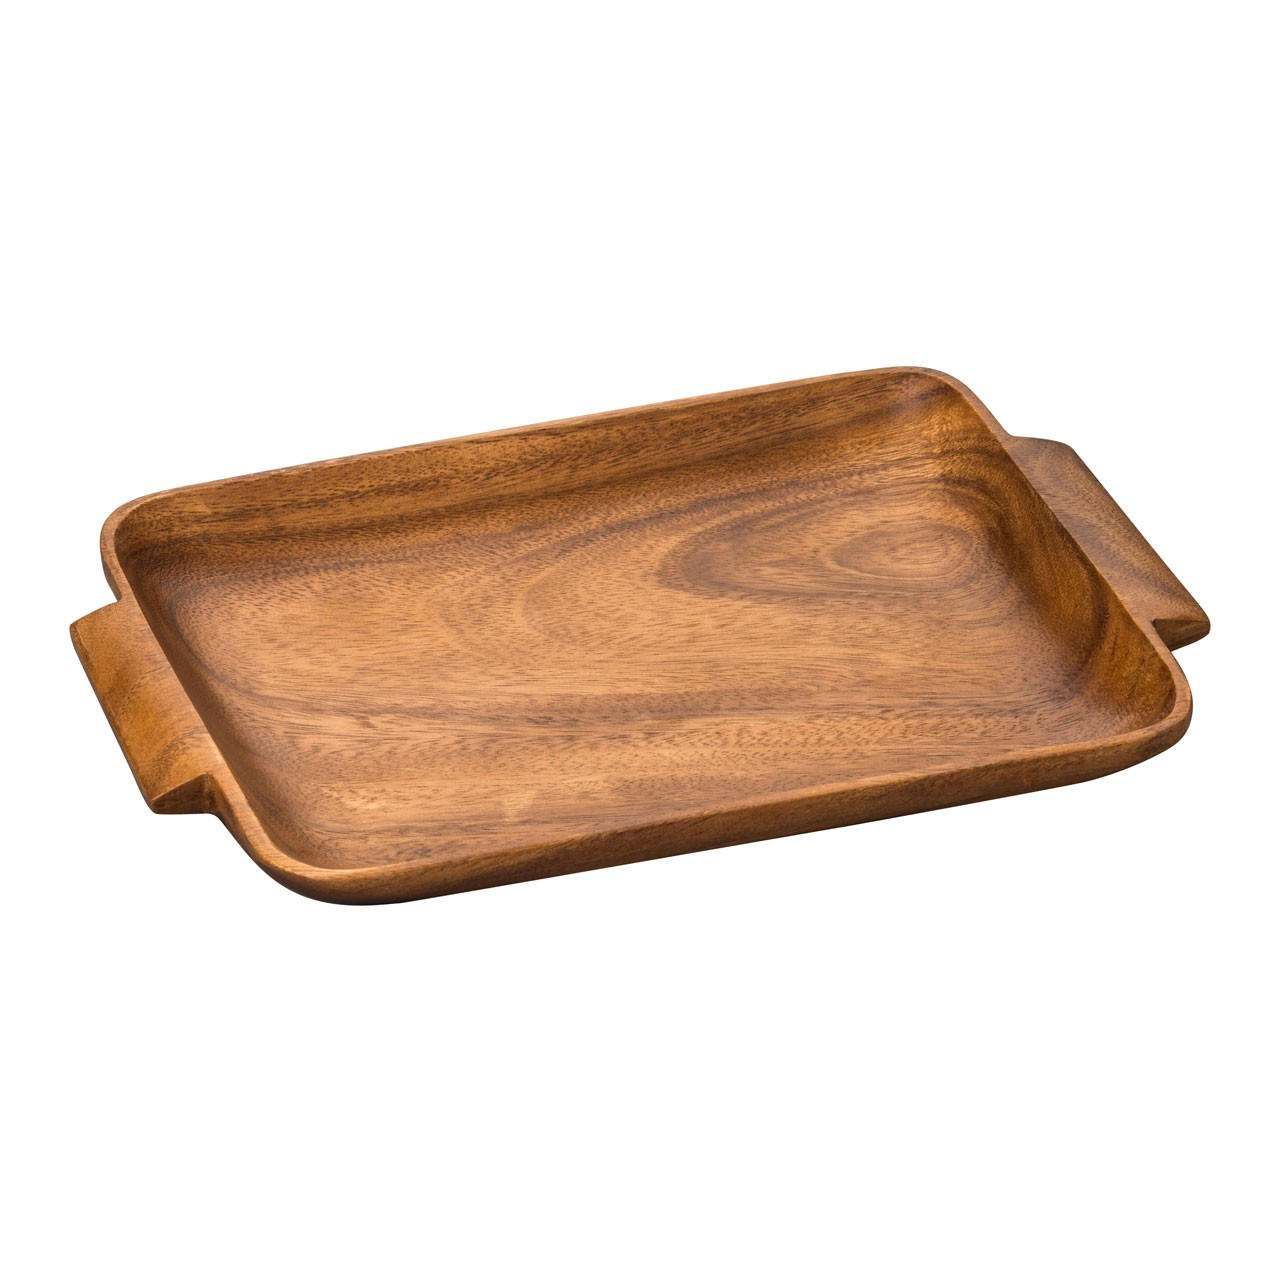 Acacia Wood Socorro Serving Tray with Handles, Brown